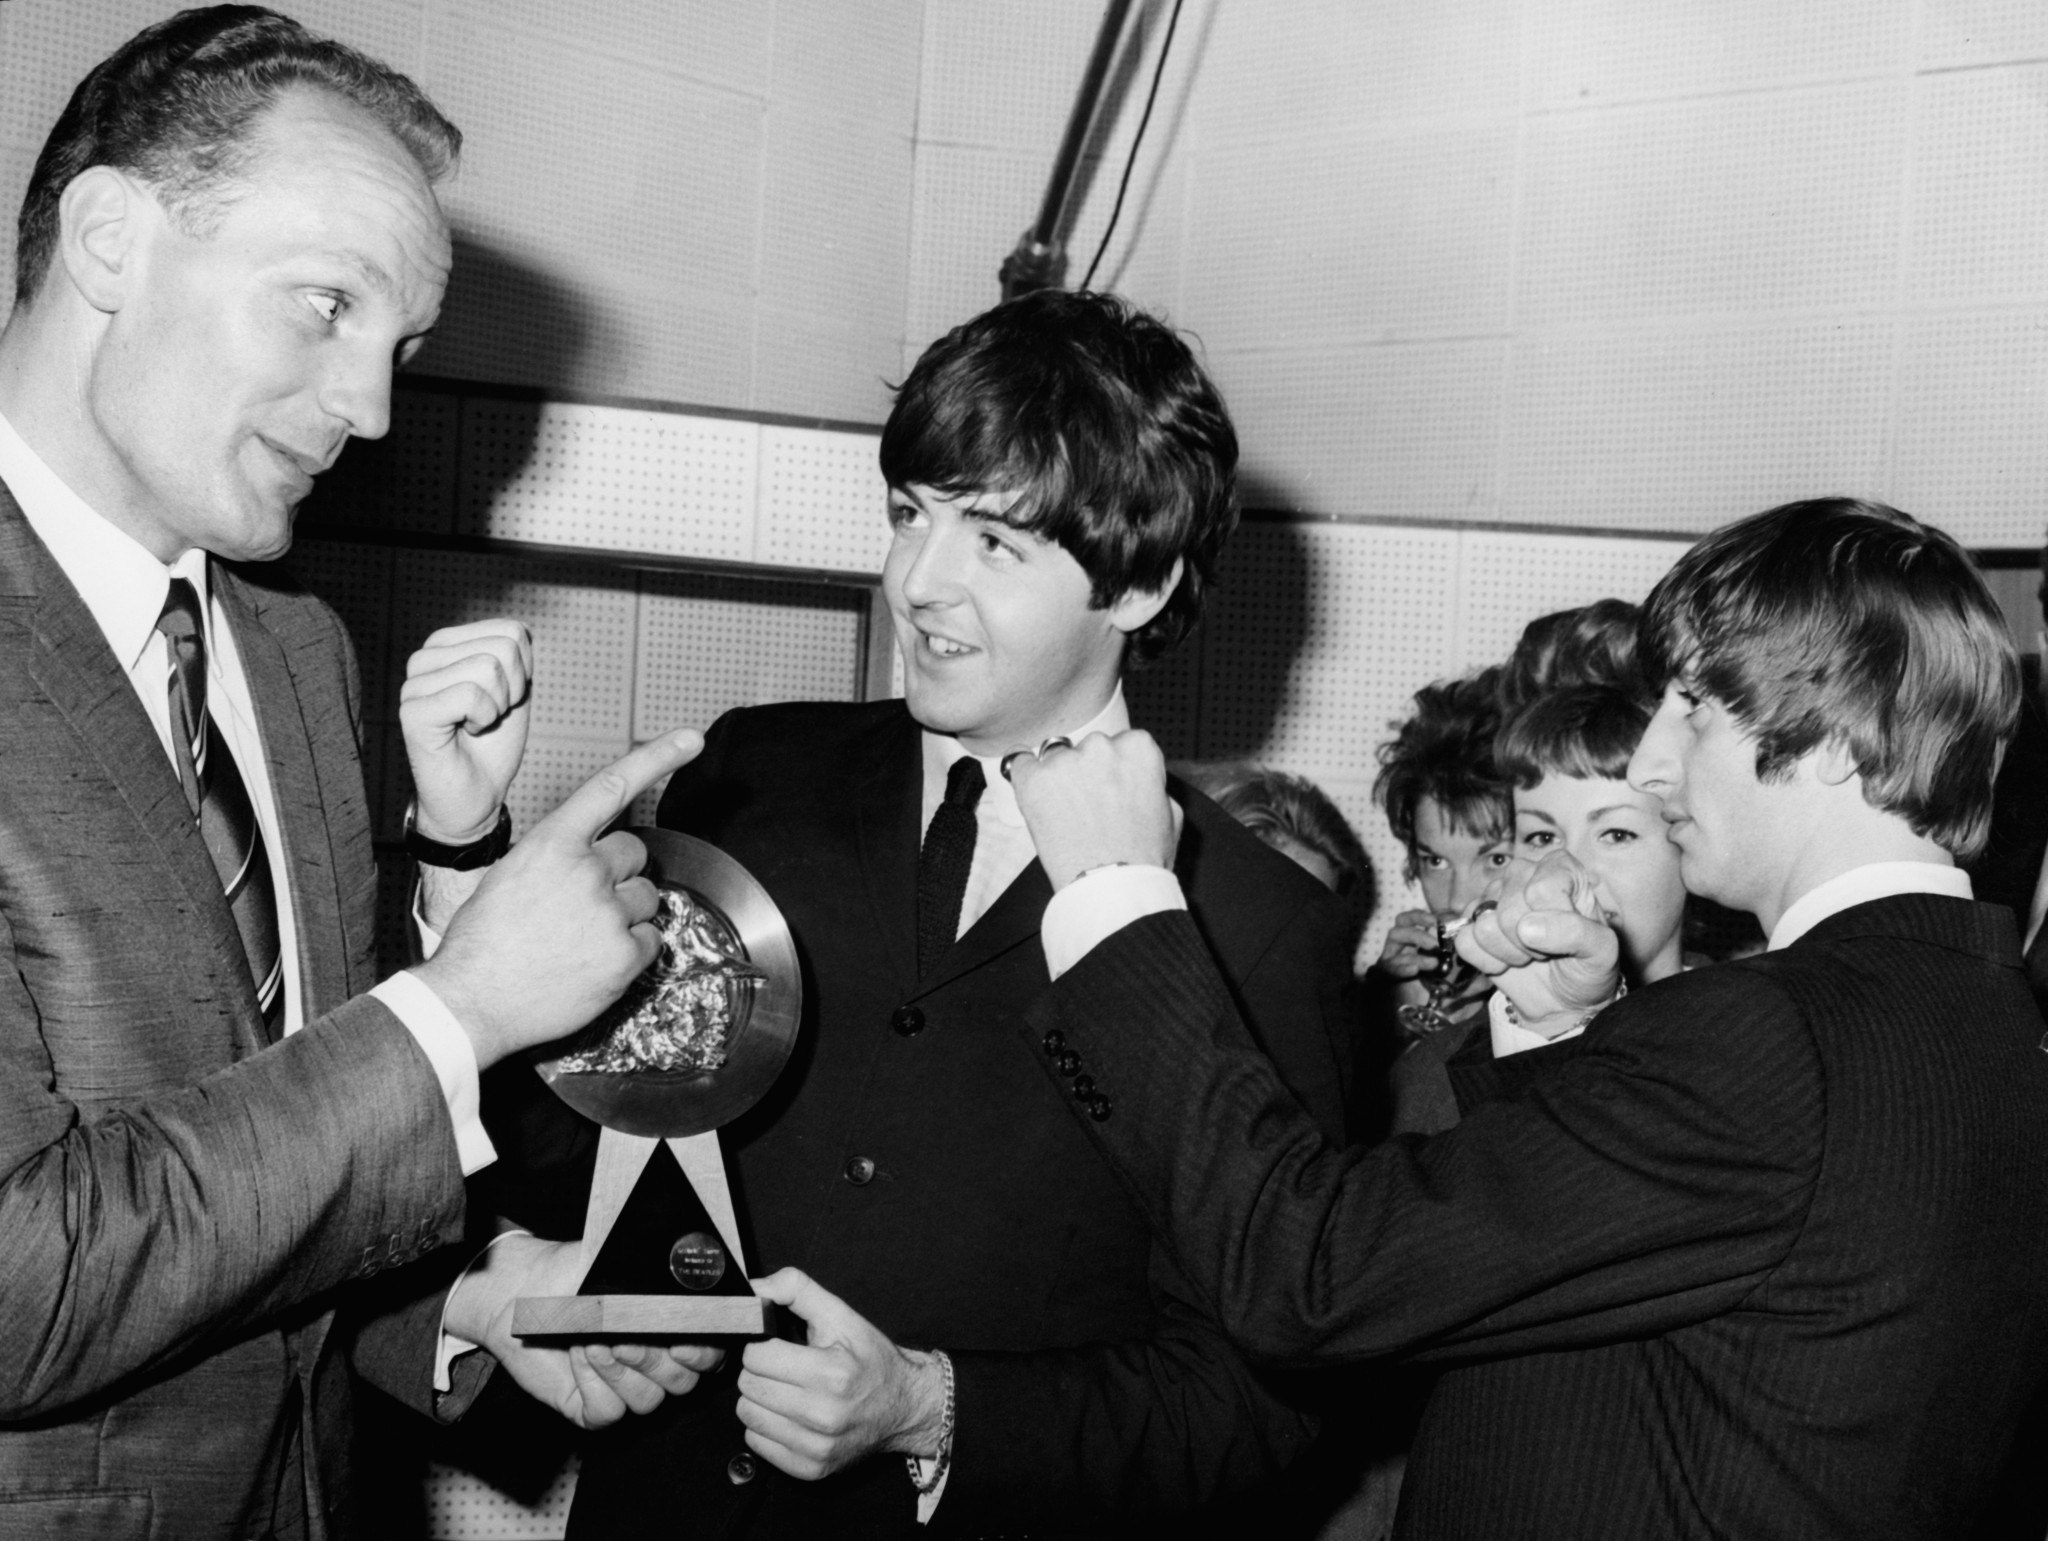 Our 'Enery, pictured above with Paul McCartney and Ringo Starr, was a hugely popular figure ©Getty Images